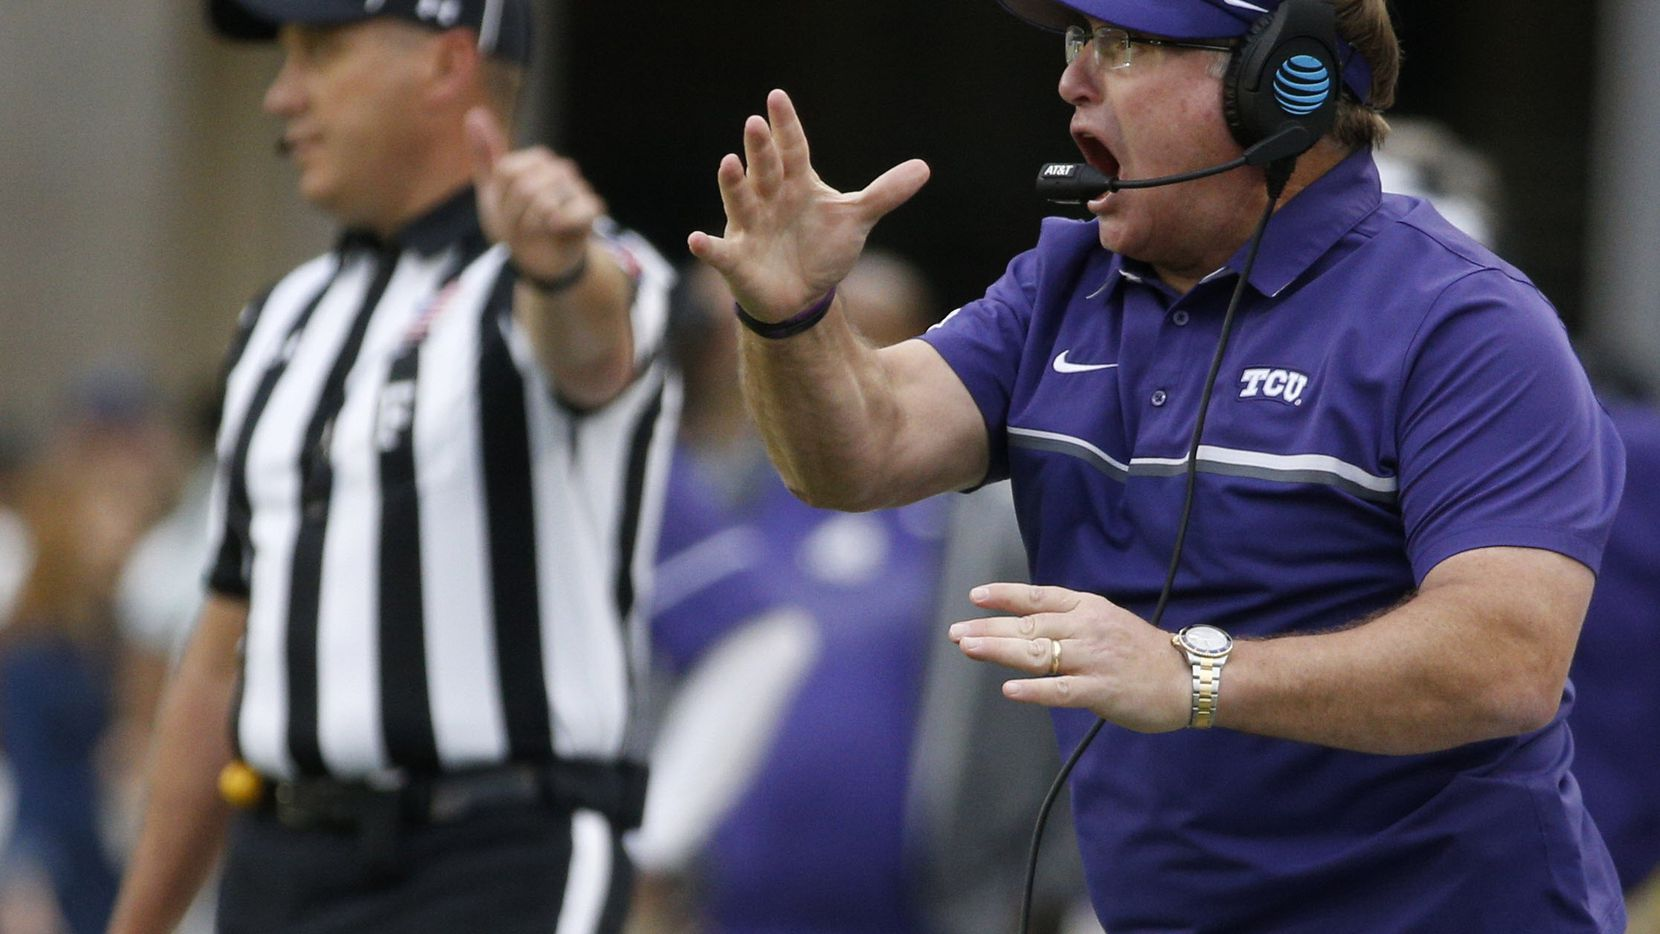 TCU coach Gary Patterson yells during their game against Baylor Bears at McLane Stadium in Waco, Texas on Nov. 5, 2016.  TCU was leading 38-14 at the half.